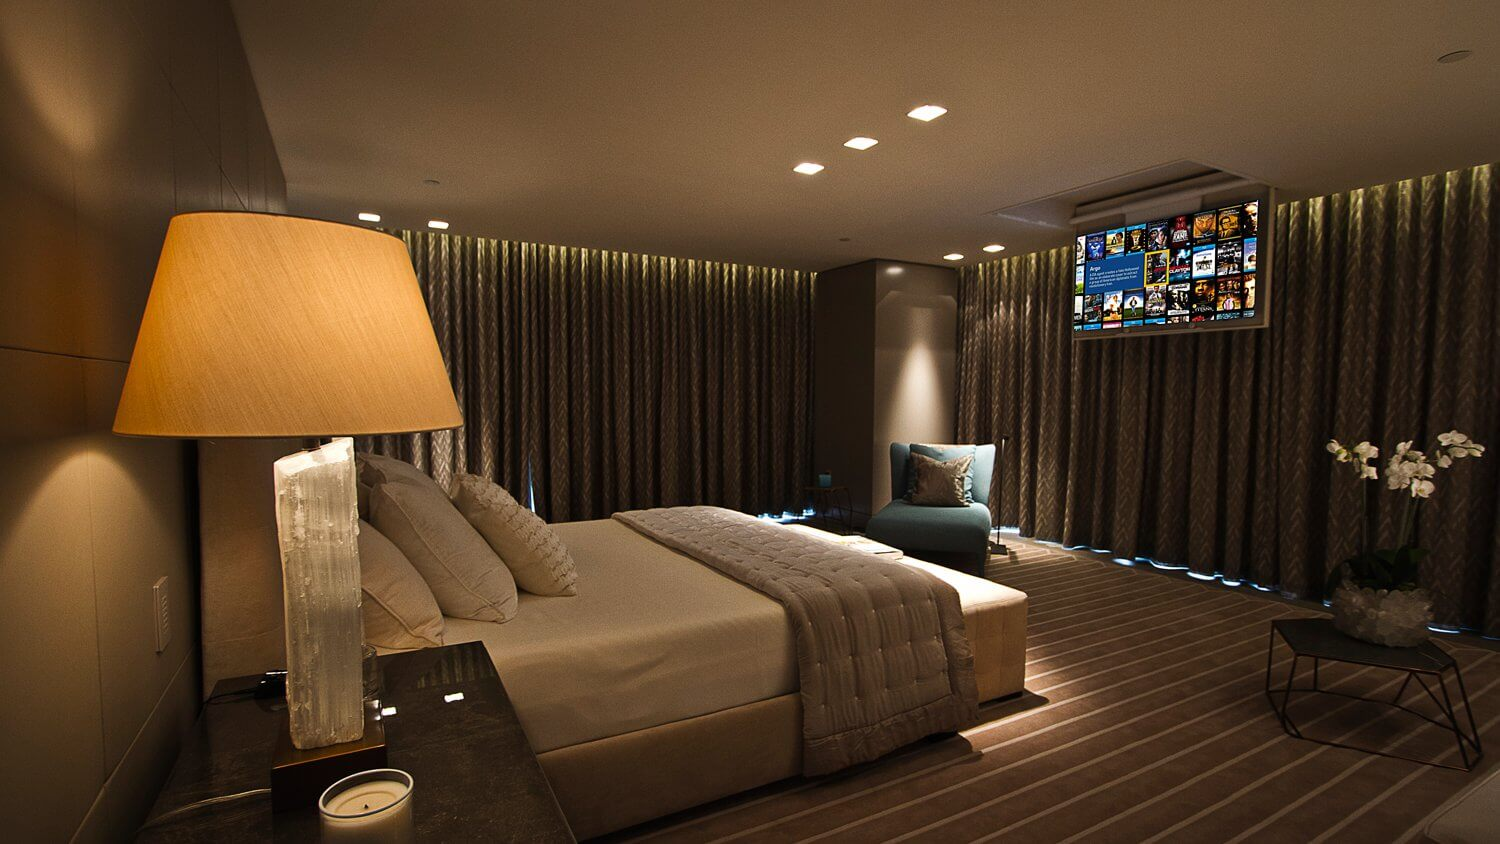 luxury yachts Interior Design by MDfx luxury bedroom on yacht with concealed tv in ceiling